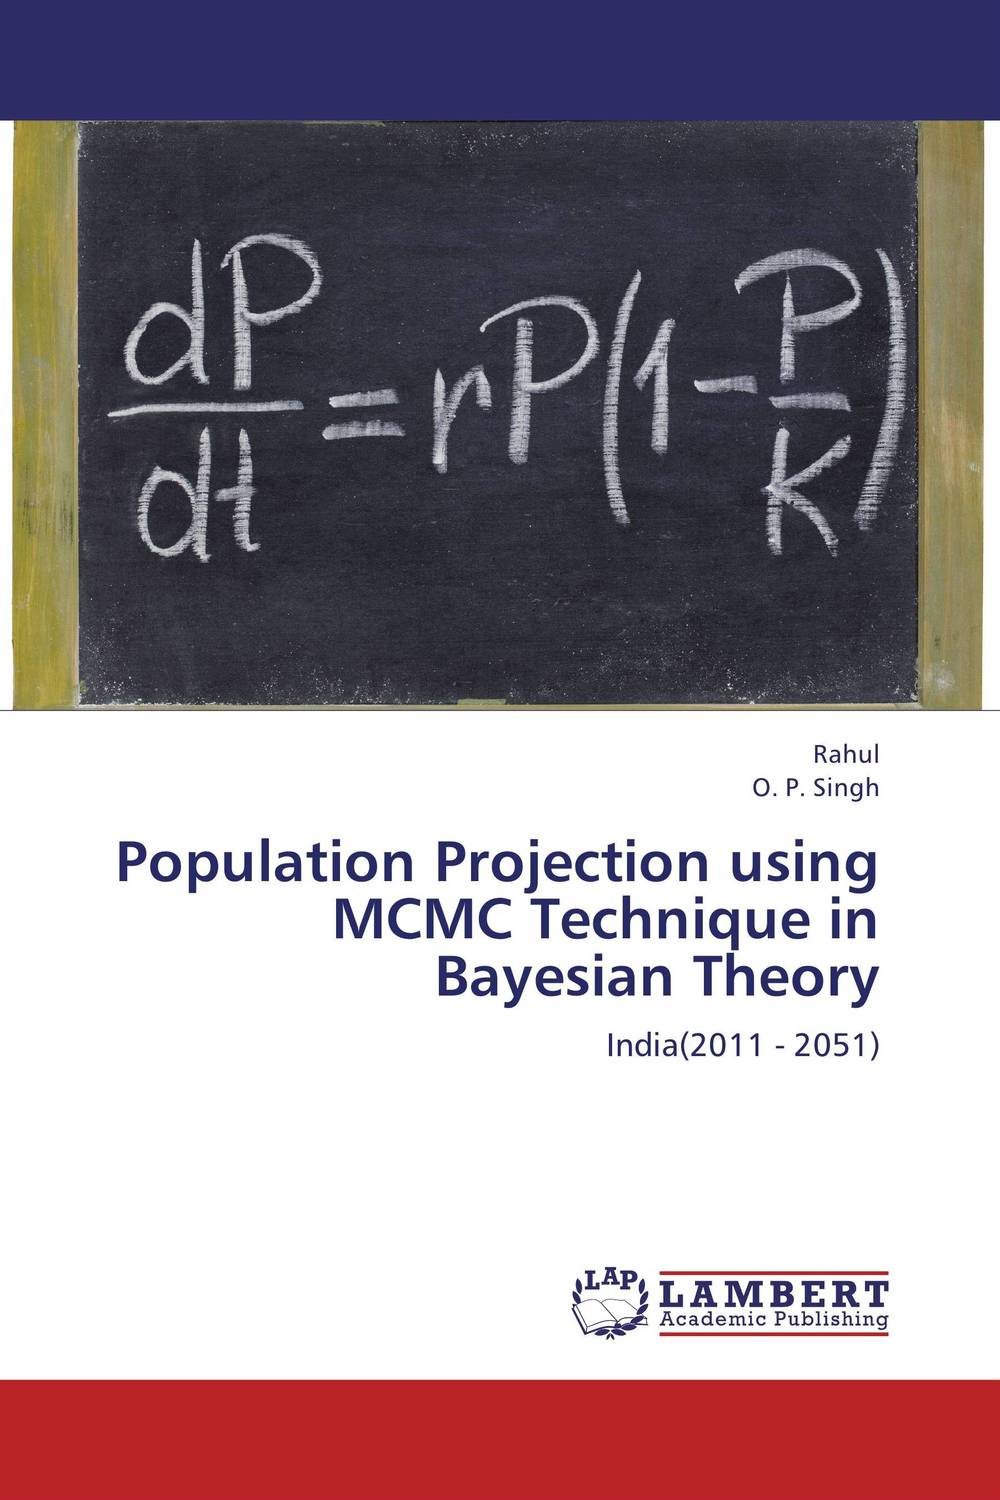 Population Projection using MCMC Technique in Bayesian Theory bayesian deconvolution of sparse processes